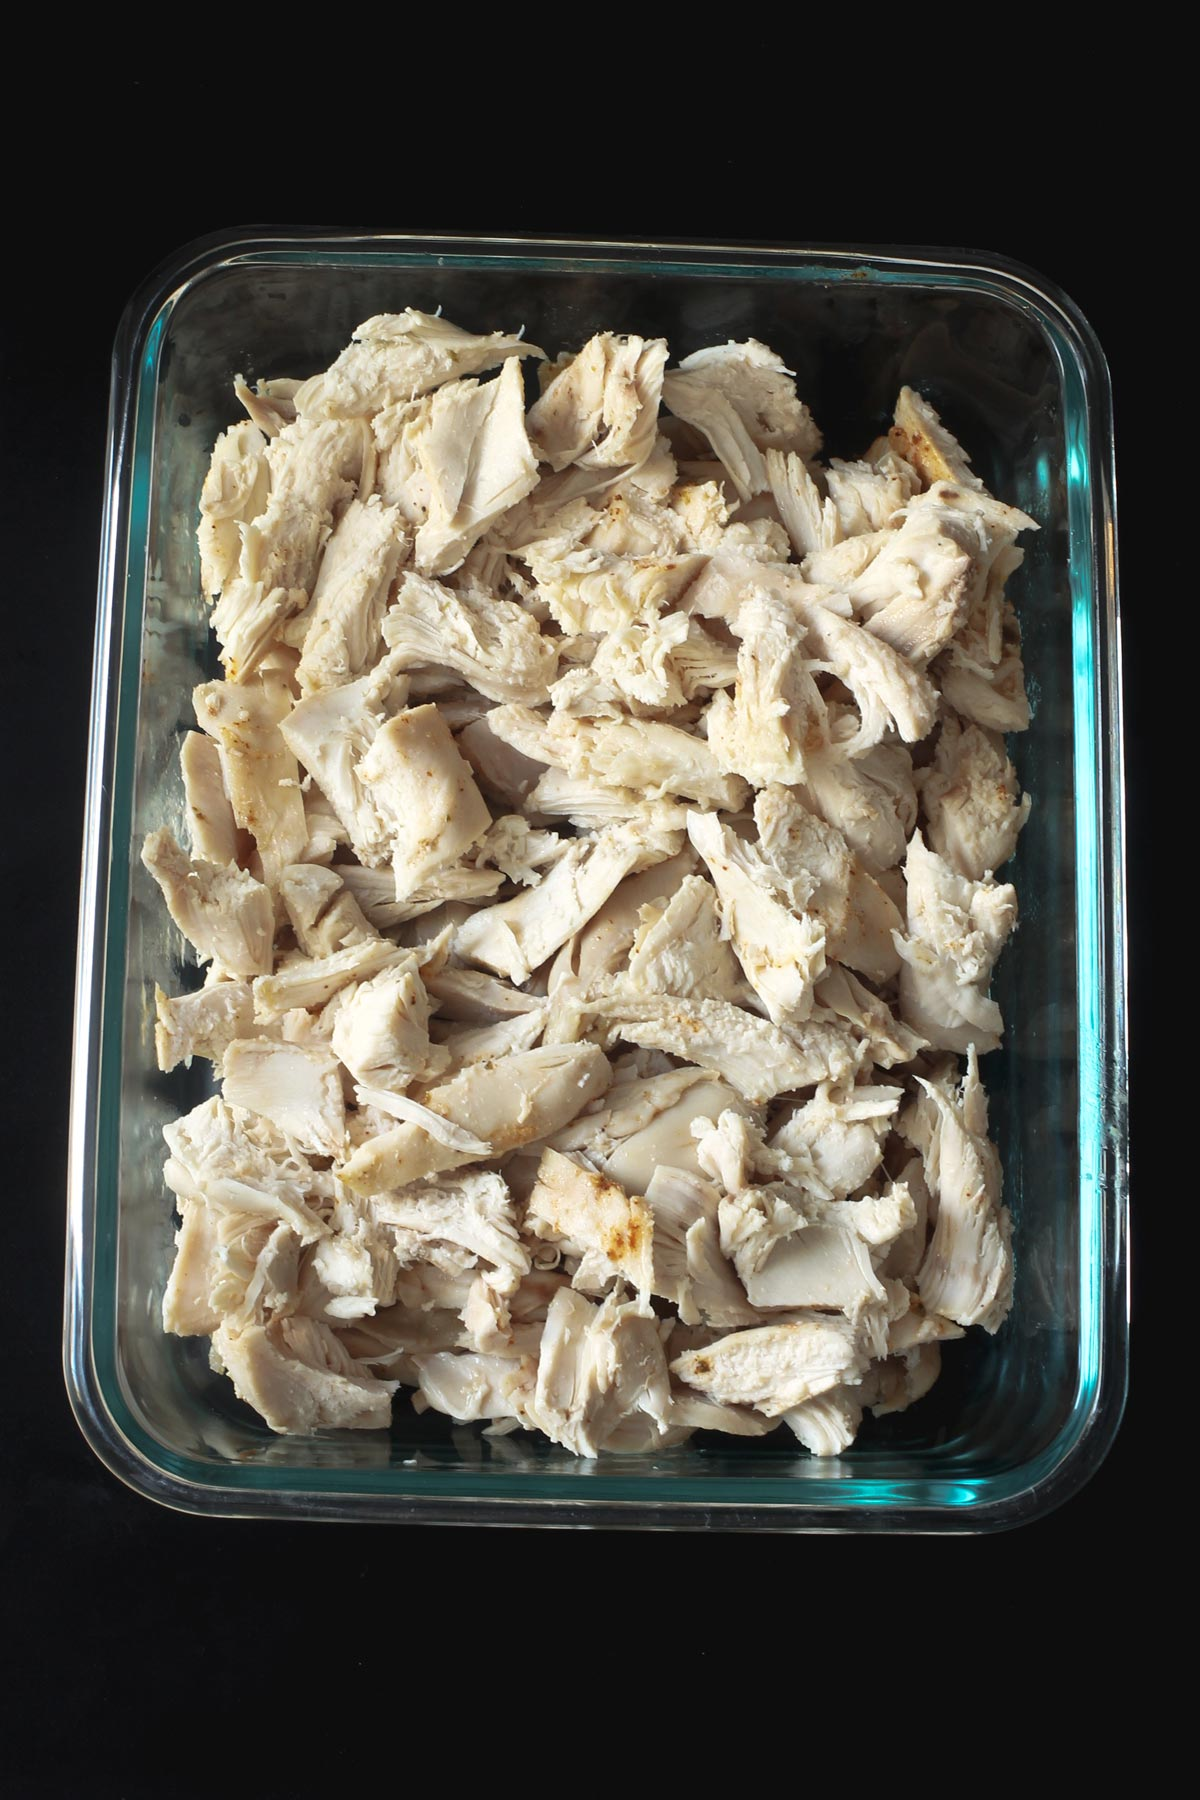 glass dish with cubed chicken cooked in the slow cooker ready for recipes.